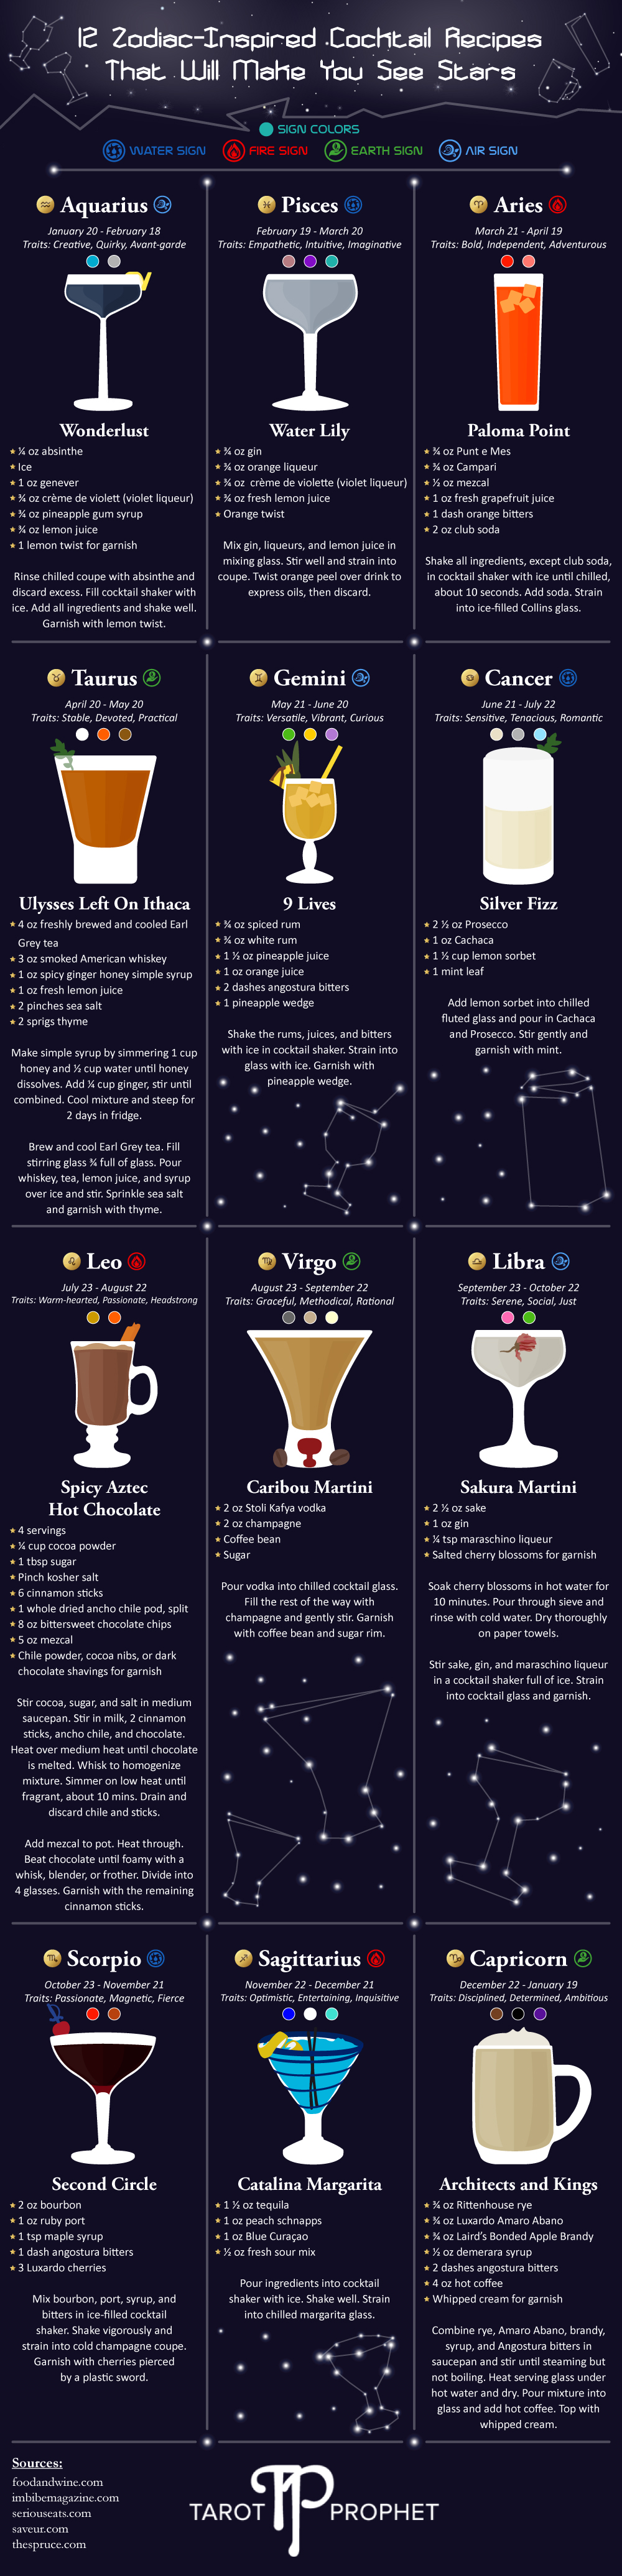 12 Zodiac-Inspired Cocktail Recipes That Will Make You See Stars - TarotProphet.com - Infographic